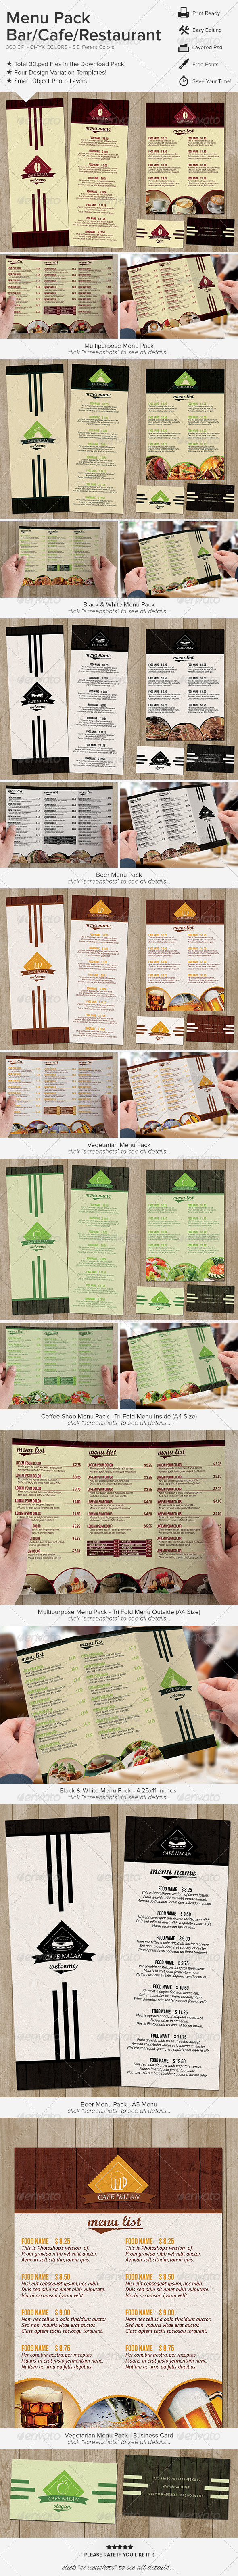 GraphicRiver Menu Pack Bar Cafe Restaurant 6355504